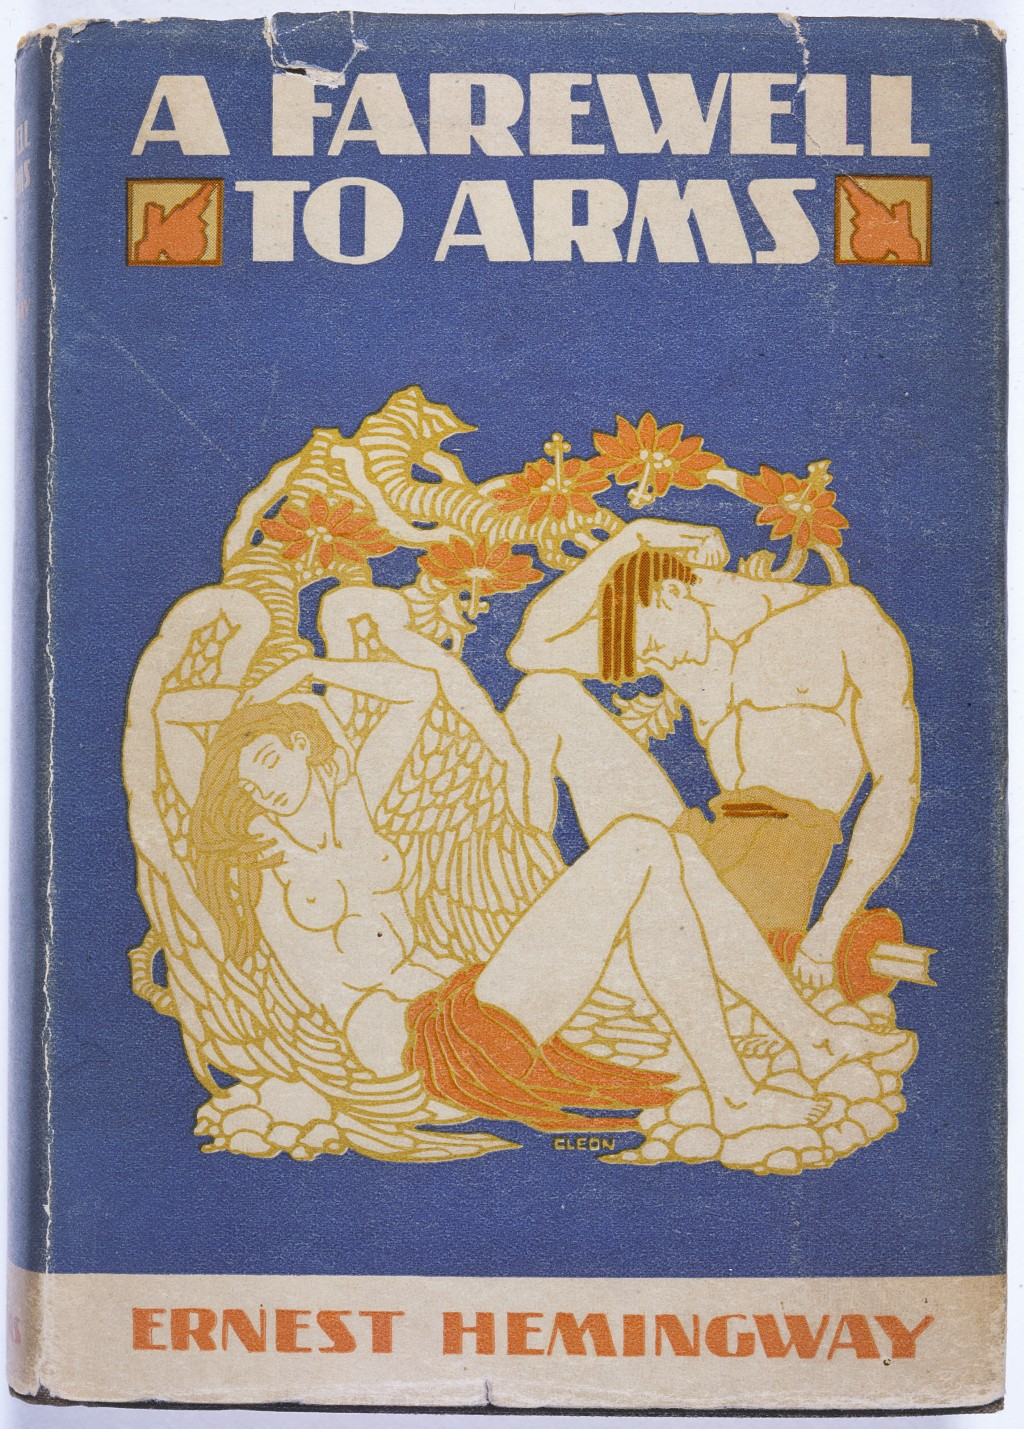 <p>Ernest Hemingway: A Farewell to Arms, 1929 cover. Princeton University Library.</p>